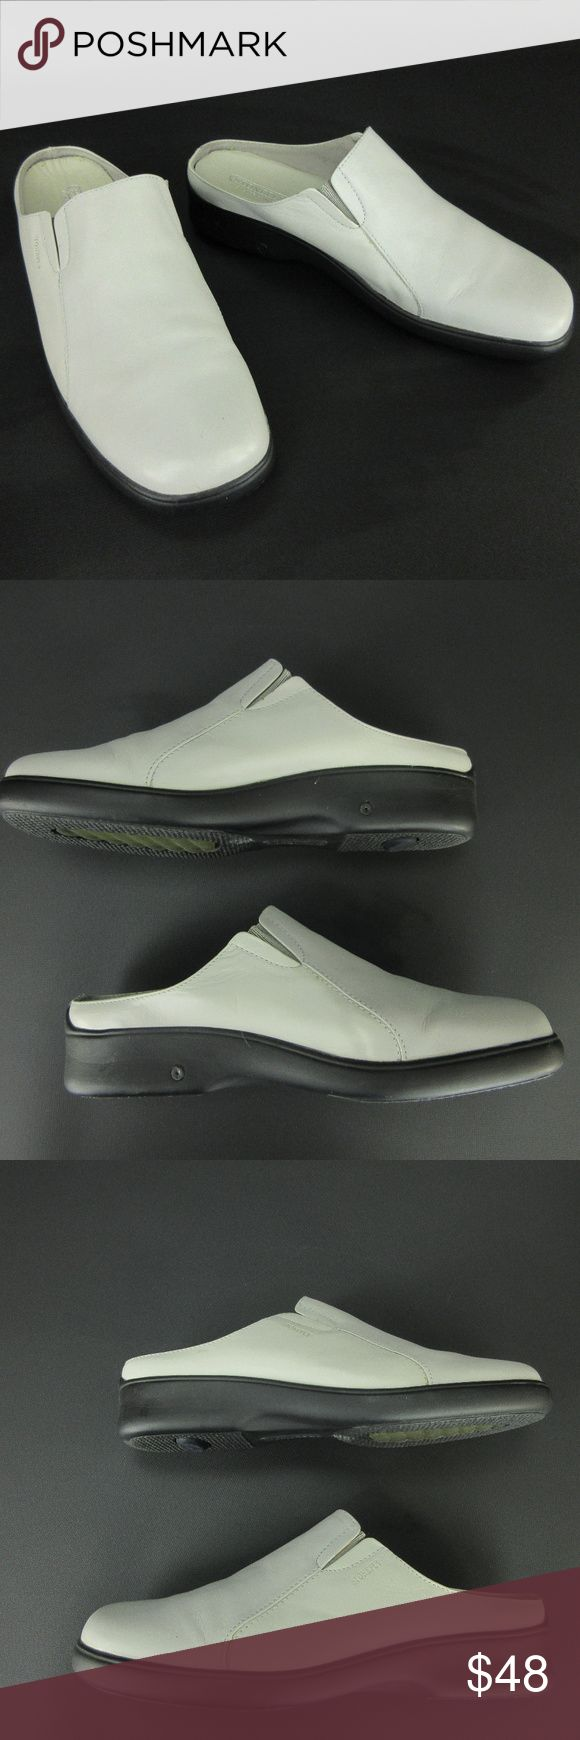 """Stonefly Womens Clogs 38 7 -7.5 Gray Leather Italy Stonefly Womens Clogs 38 7 - 7.5 Gray Leather Slip On Shockair Wedge Shoes Italy      Absolute Comfort     Square Toe     Dual Stretch Inserts     Removable Vented Leather Insole     Shockair Project     Wedge Heel     Rubber Sole  9 1/2"""" / 24.1 cm Length - Toe to Heel inside 3 3/8"""" / 8.6 cm Width at widest part of sole outside 3/4"""" / 1.9 cm Platform 1 5/8"""" / 4.1 cm Heel  Condition a few spots, stretch inserts are stretched Stonefly Shoes…"""